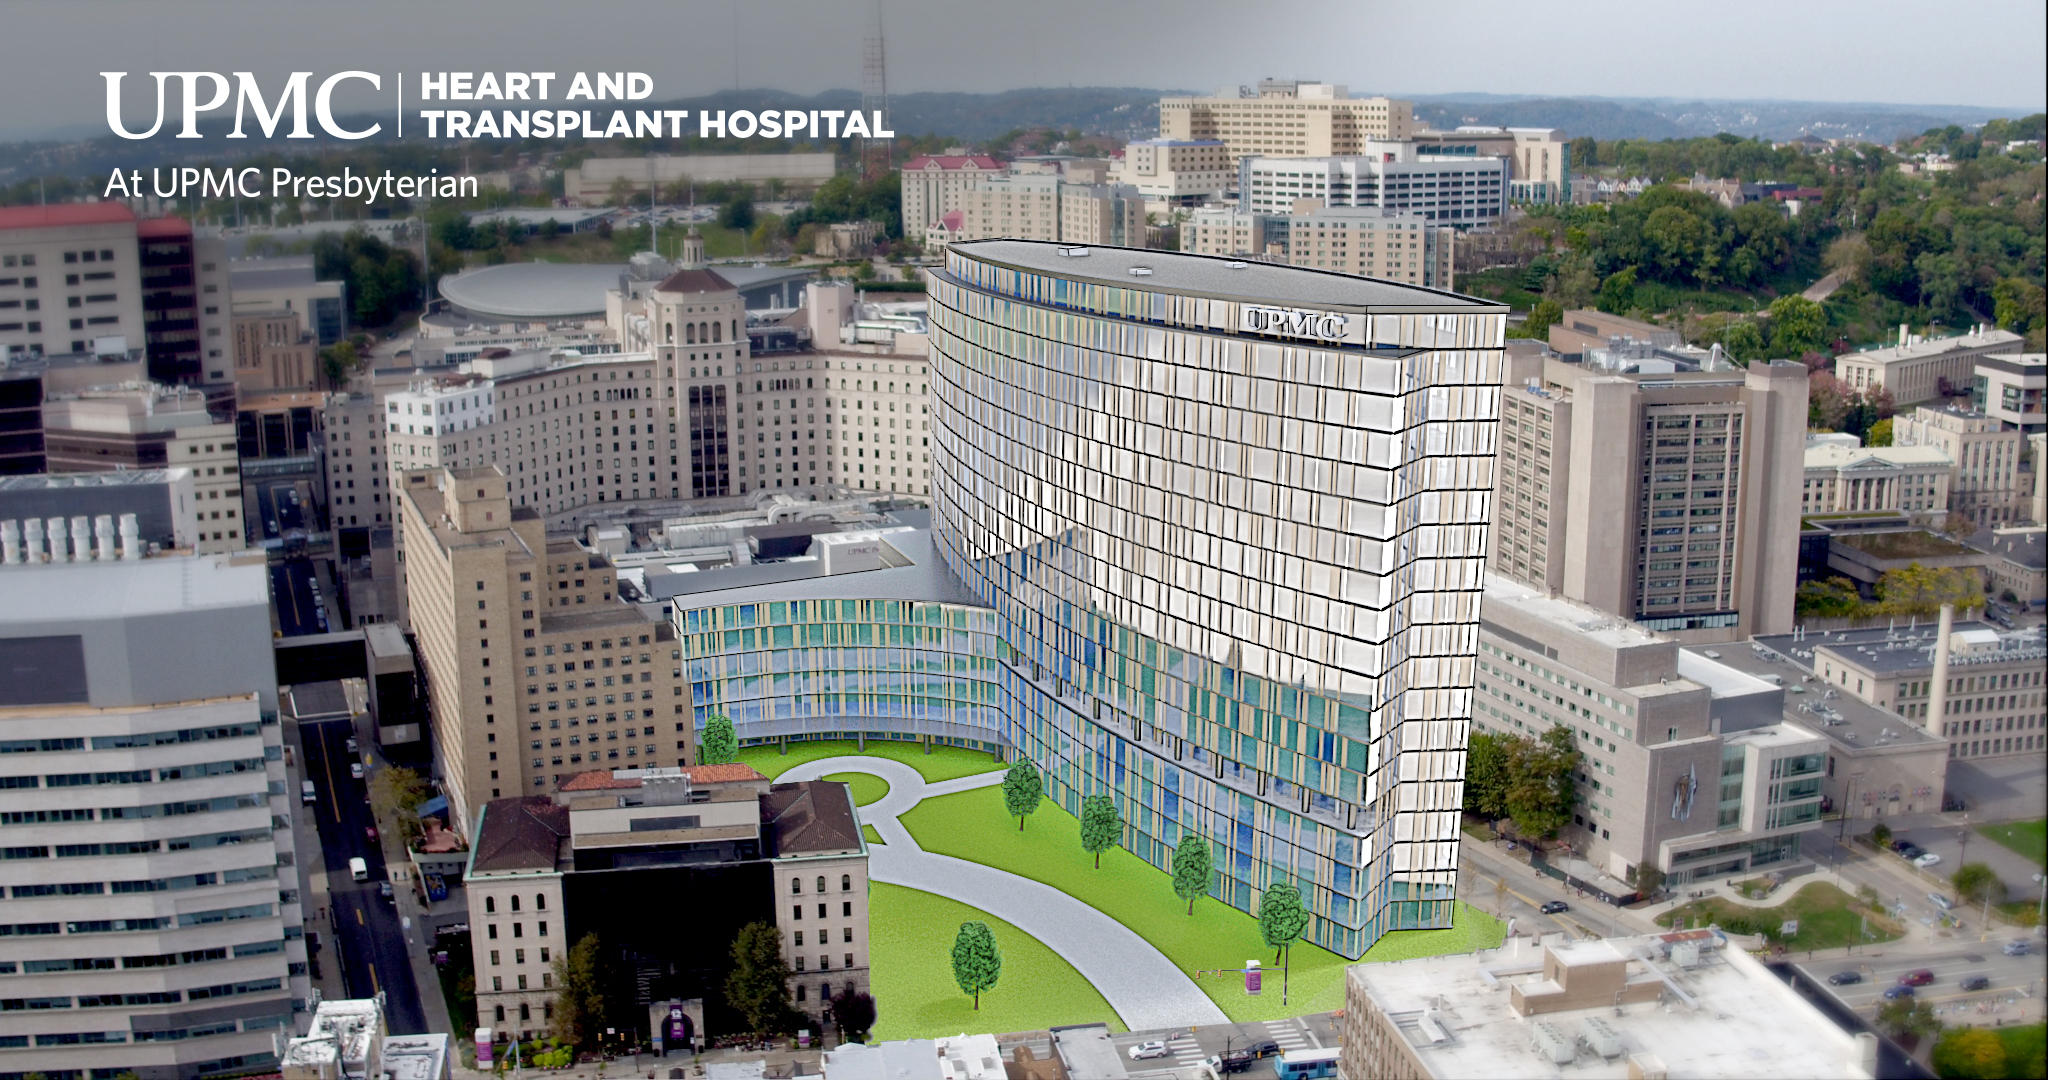 UPMC announces $2B project to build three specialty hospitals